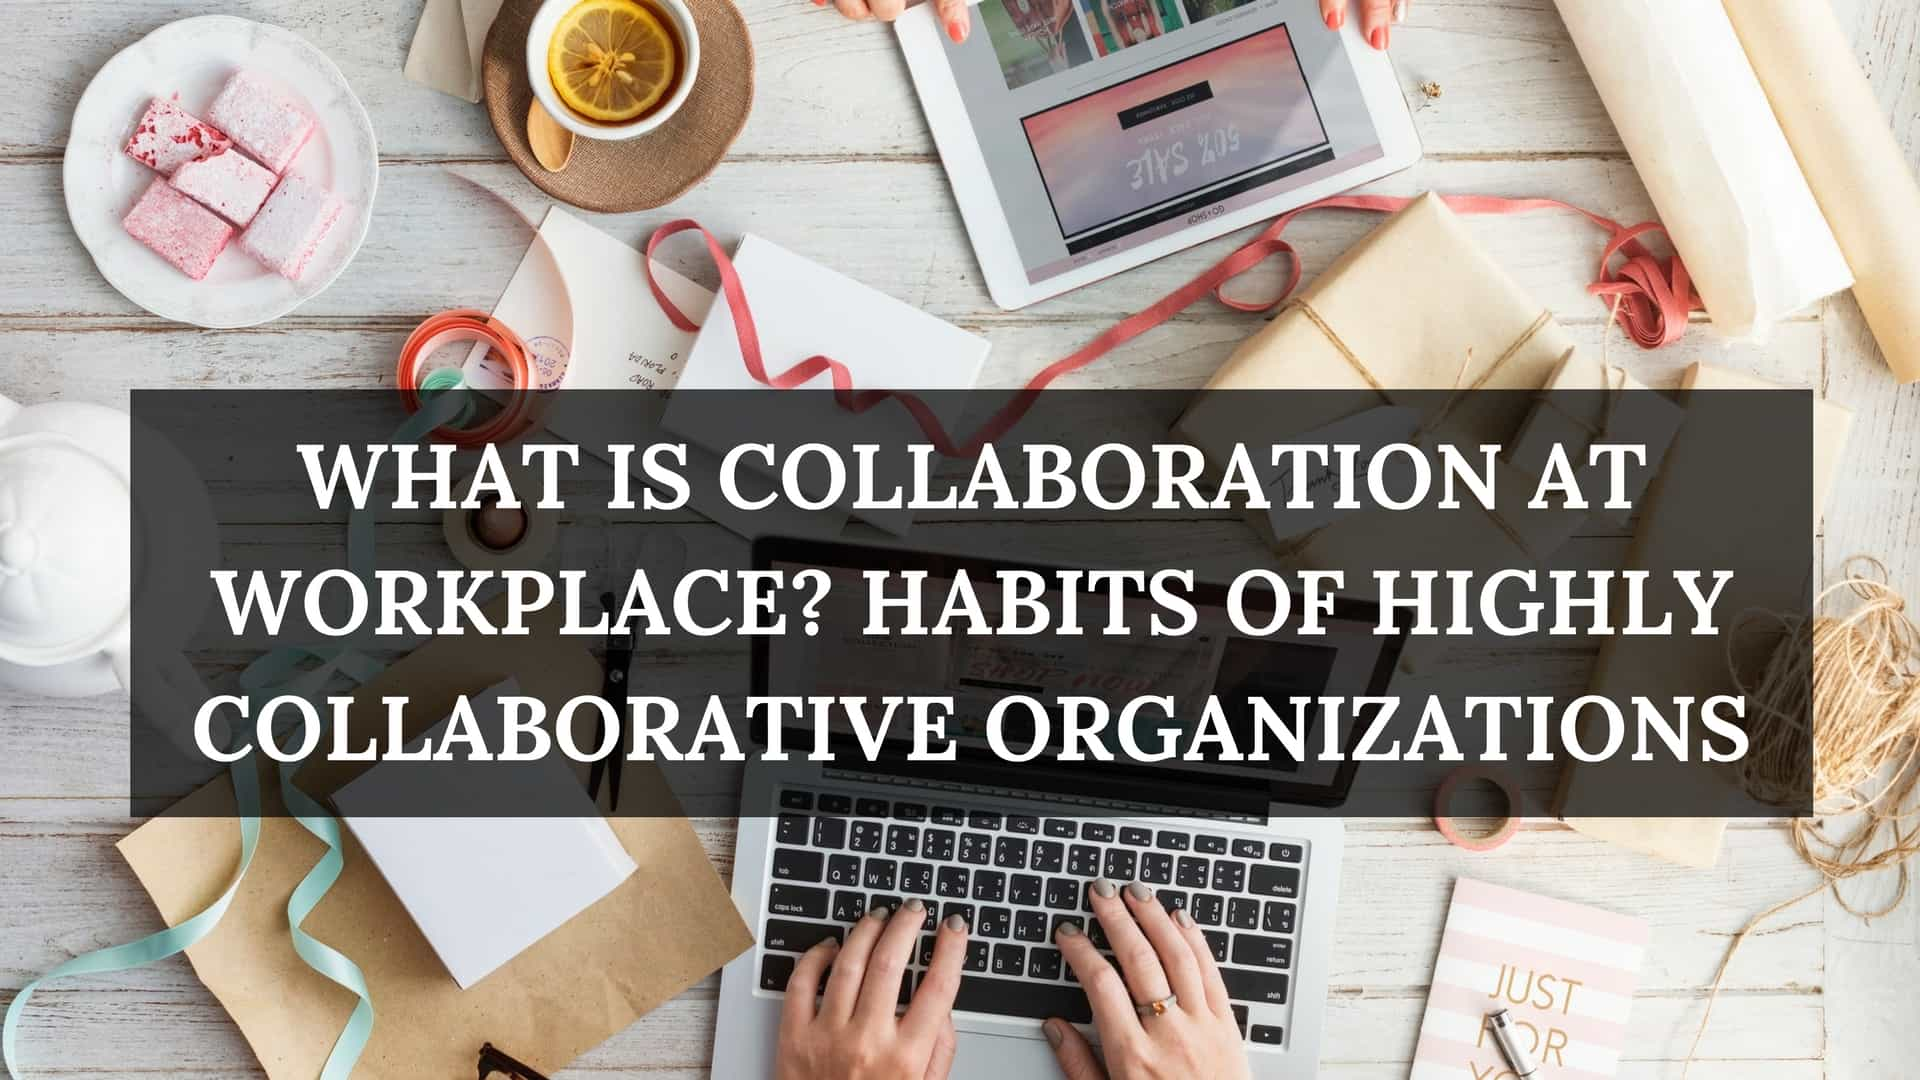 What Is Collaboration at Workplace? Habits Of Highly Collaborative Organizations